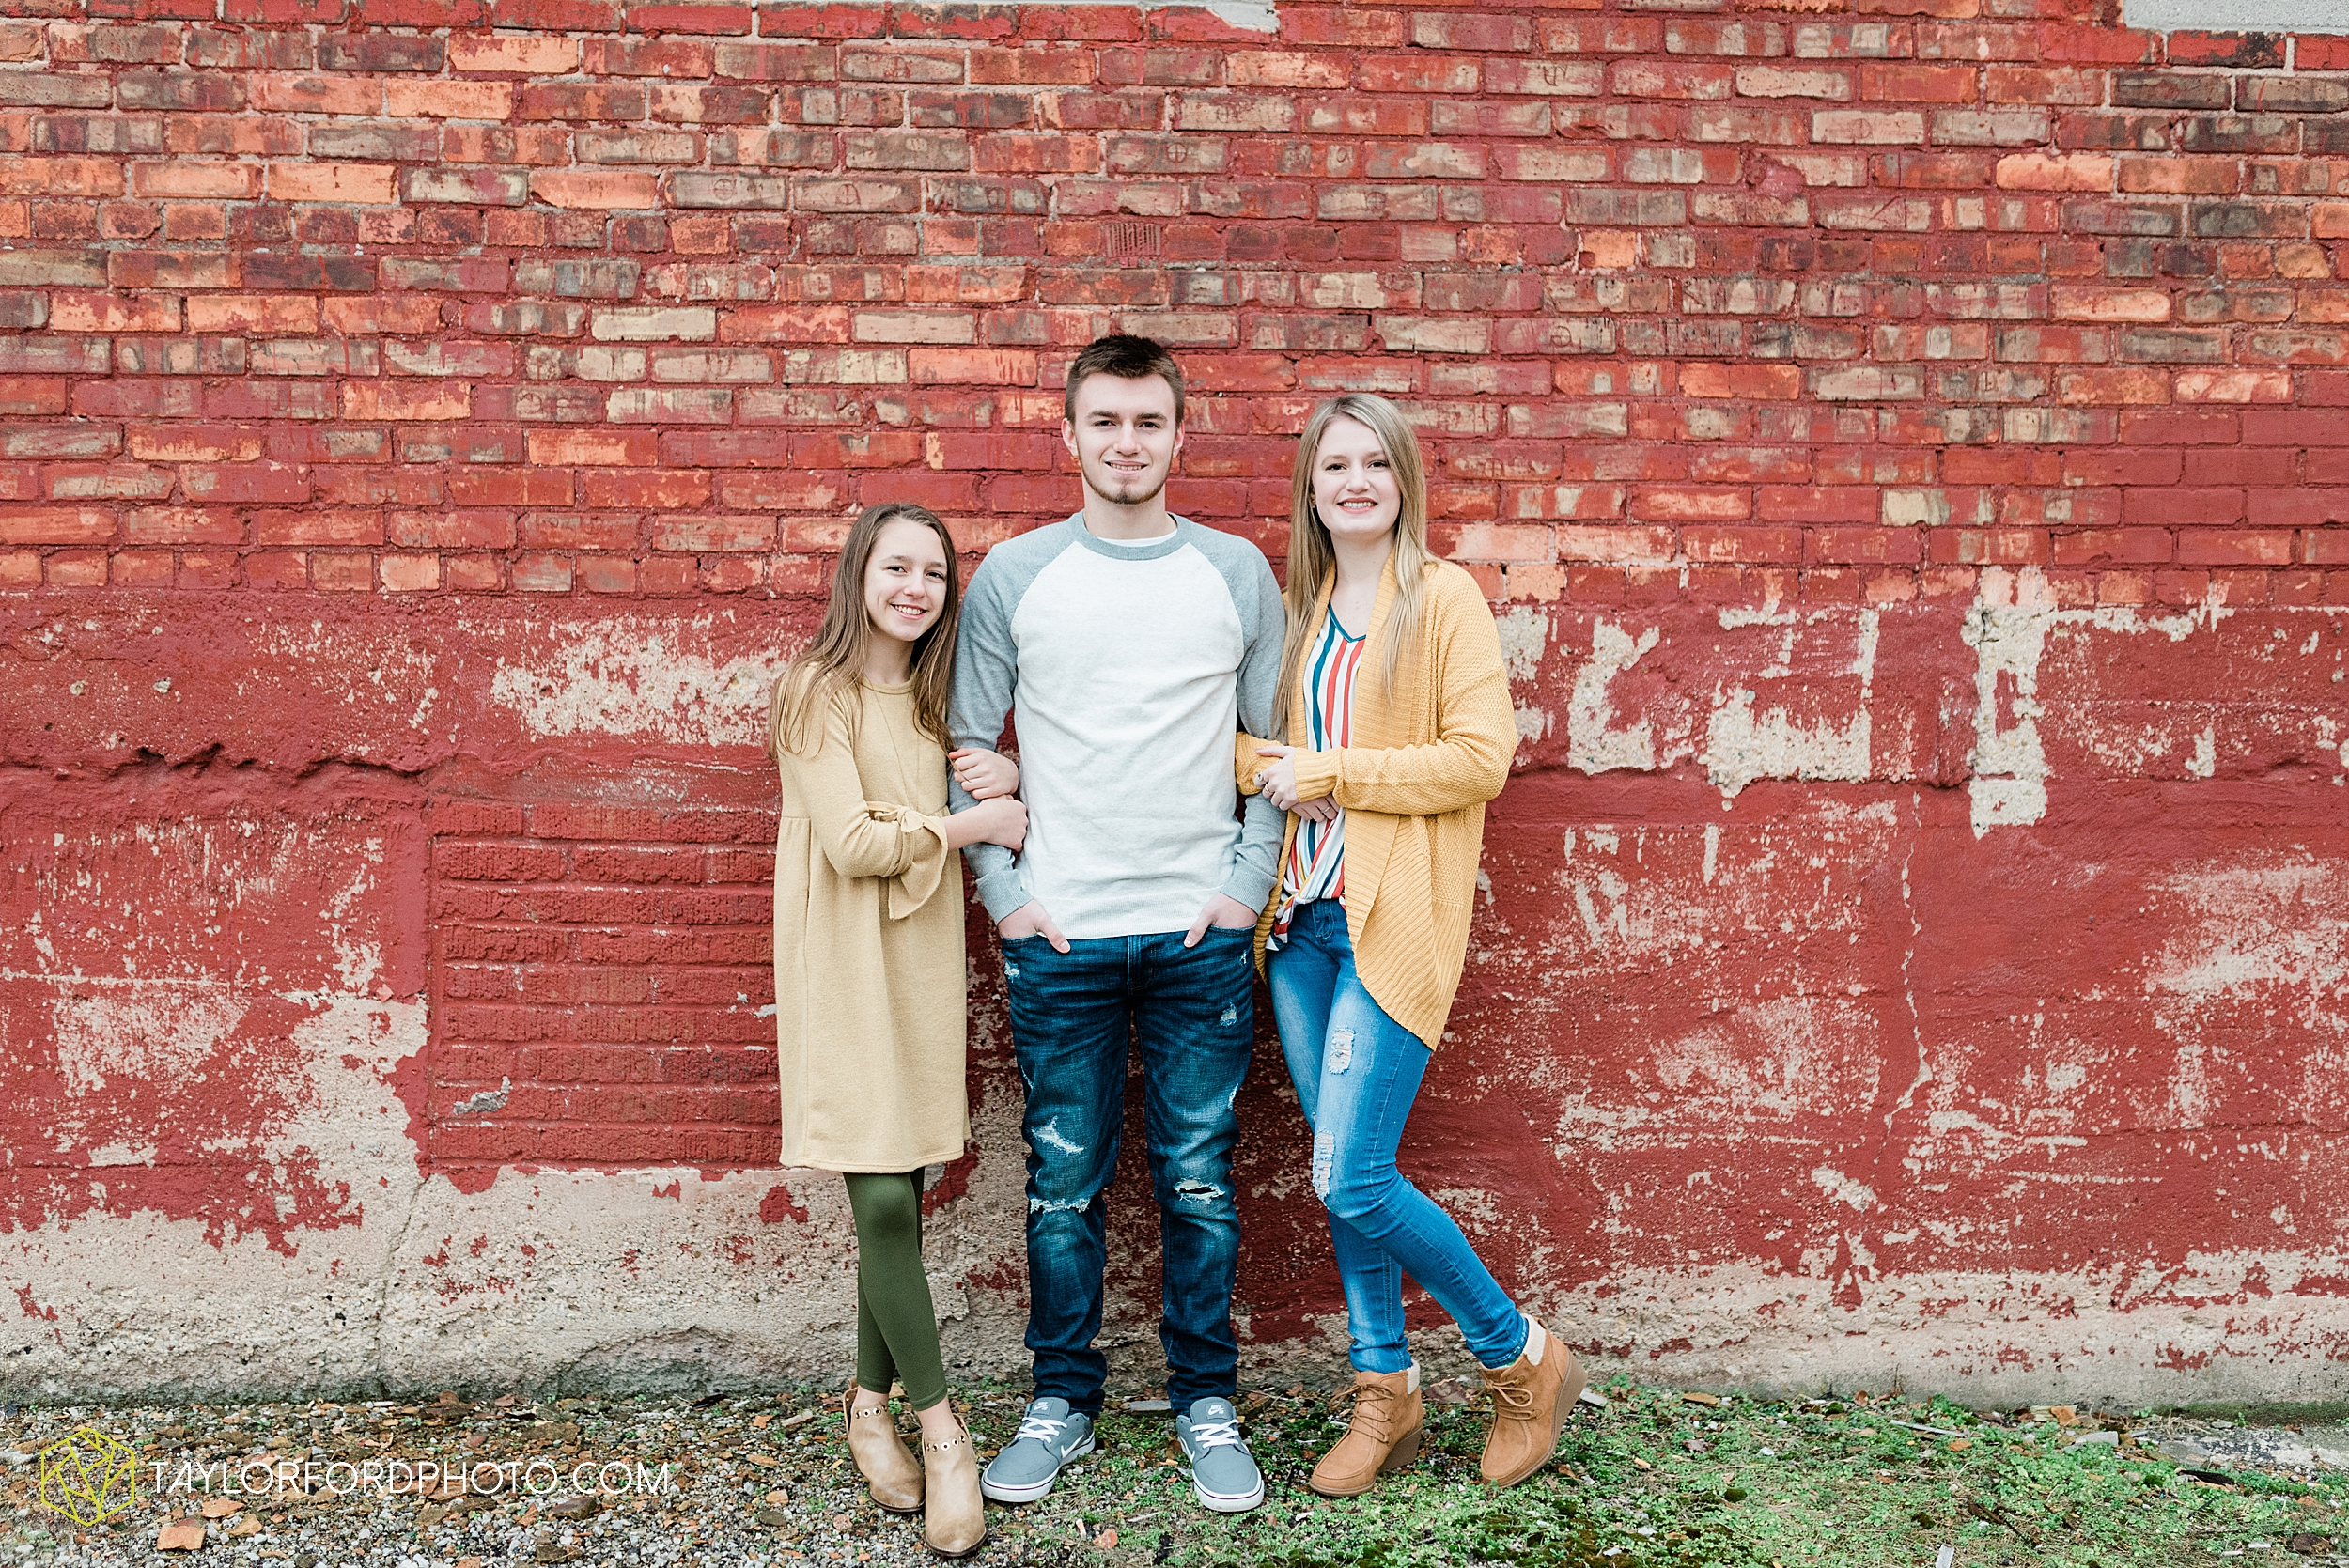 thompson-extended-family-van-wert-ohio-downtown-family-photography-taylor-ford-hirschy-photographer_2065.jpg